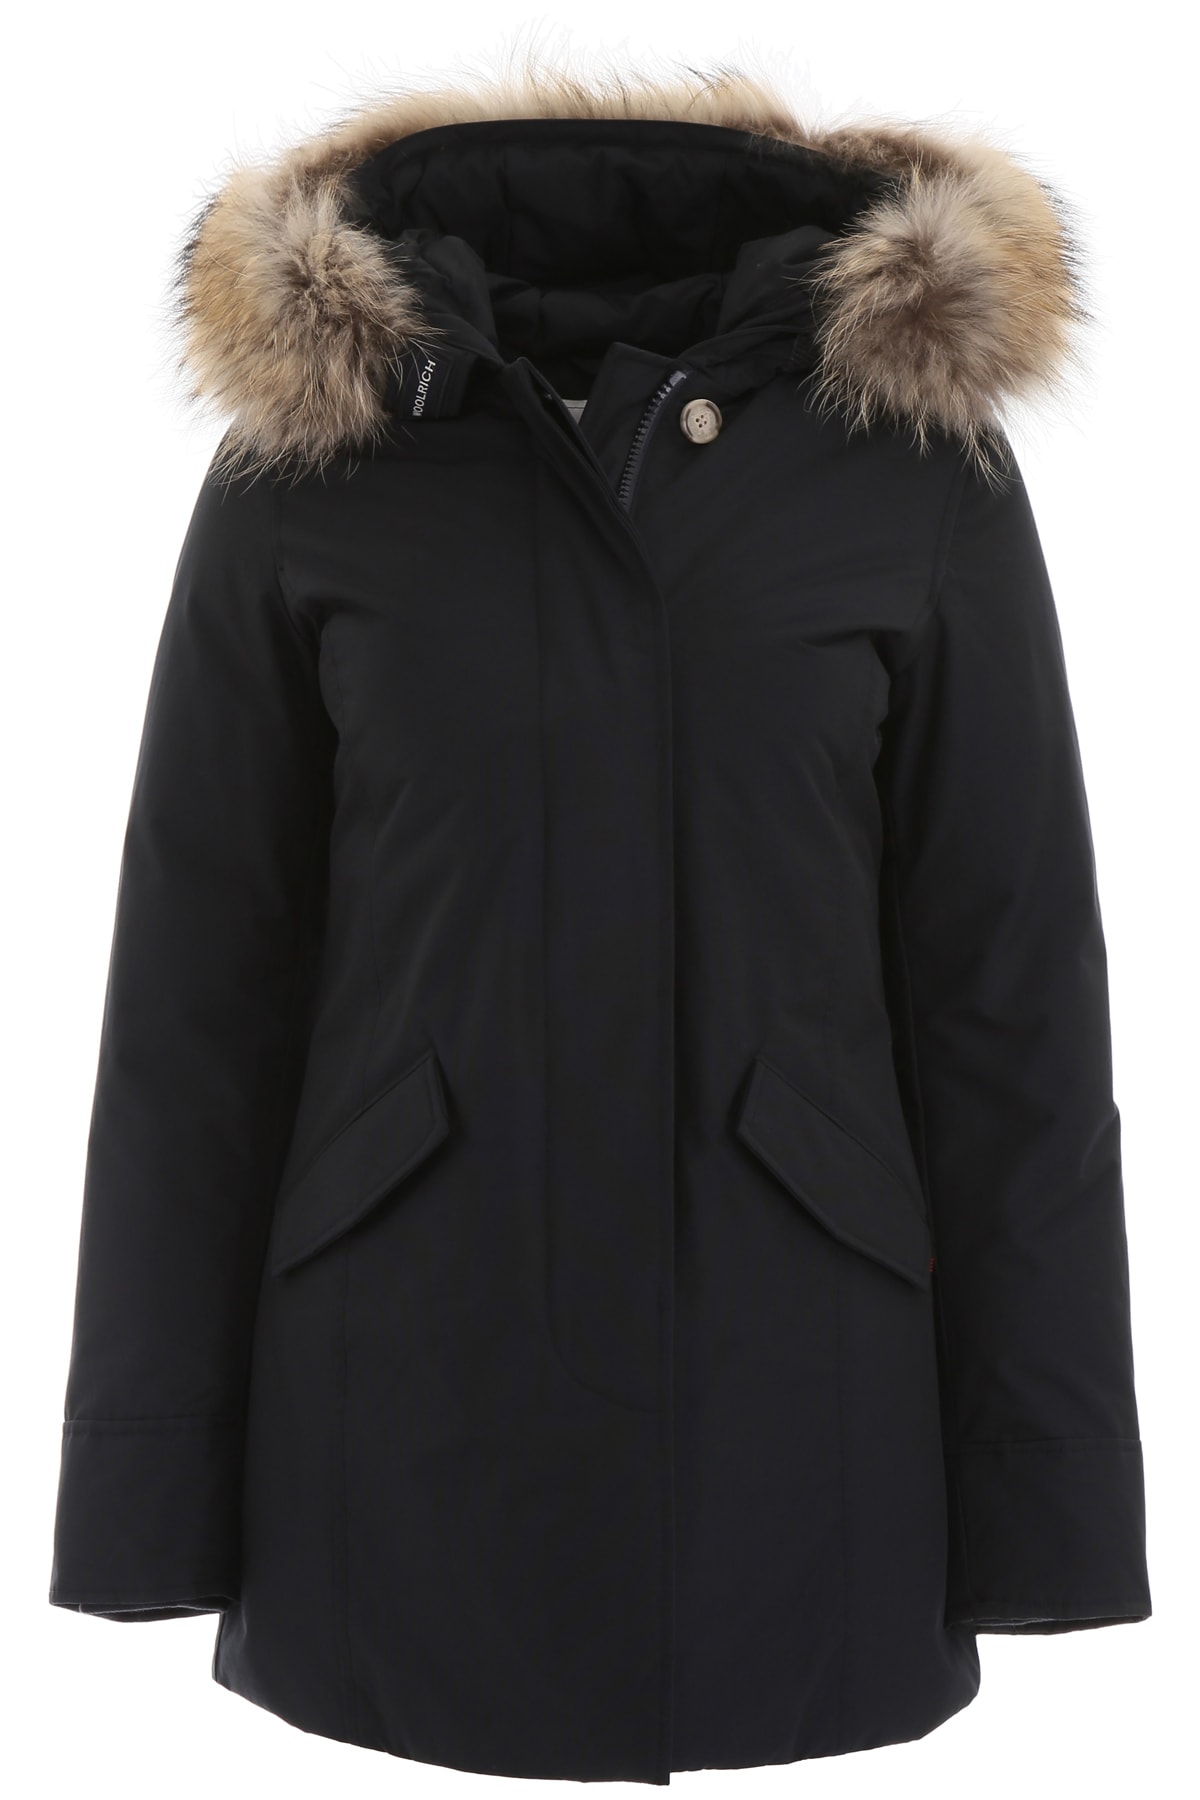 Photo of  Woolrich Arctic Parka Fr- shop Woolrich jackets online sales